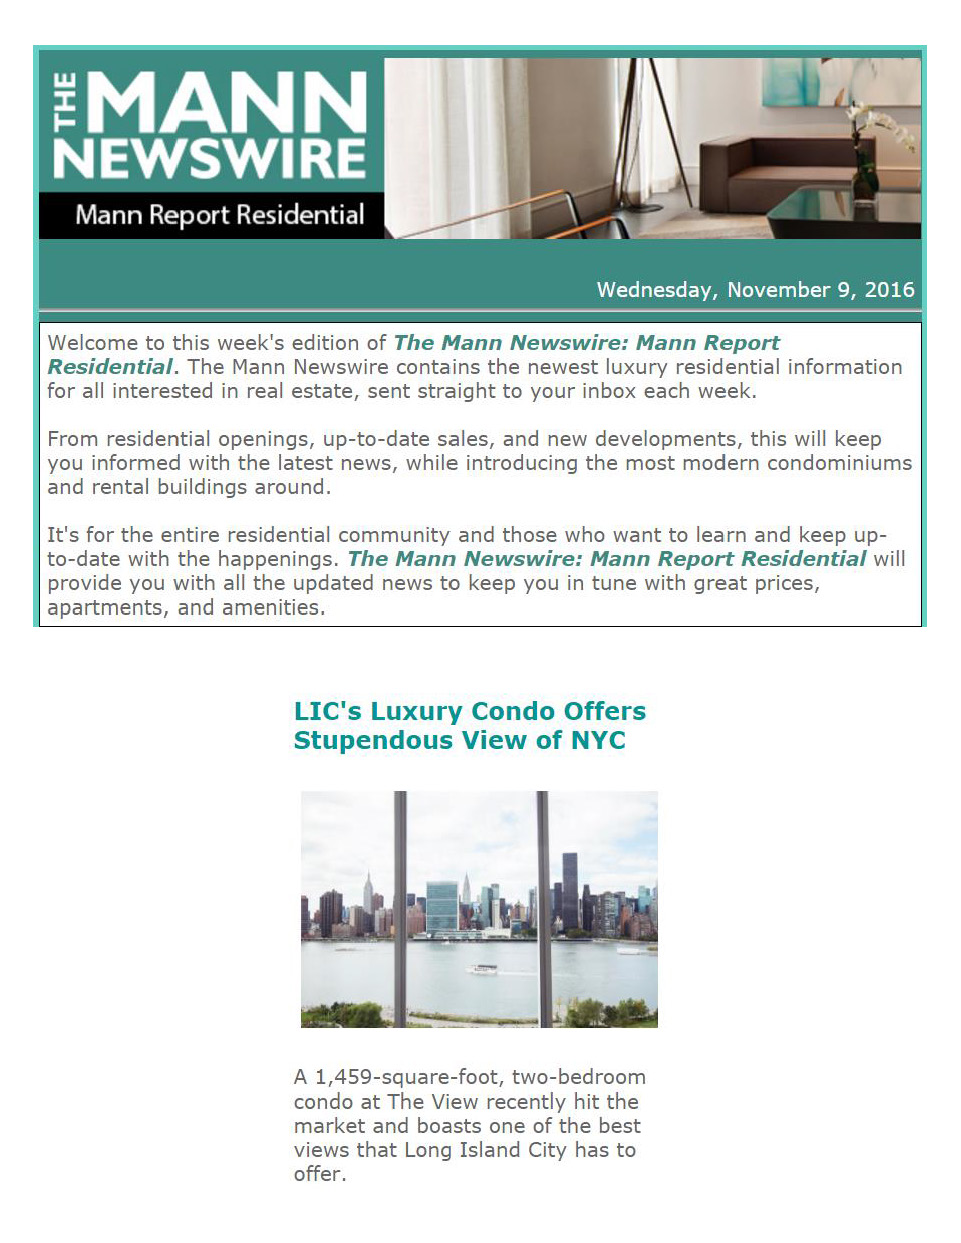 mann-newswire-lics-luxury-condo-offers-stupendous-view-of-nyc-11-9-16-1_page_1